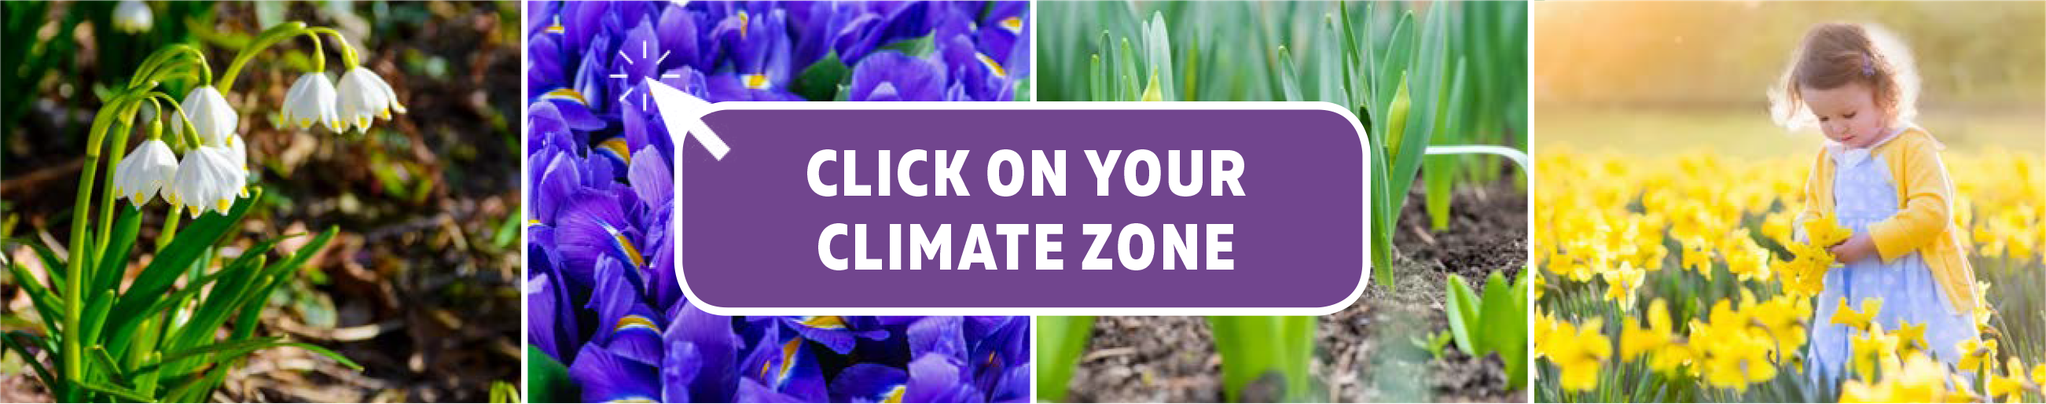 Click on your Climate Zone to see the Top 10 List for your area.